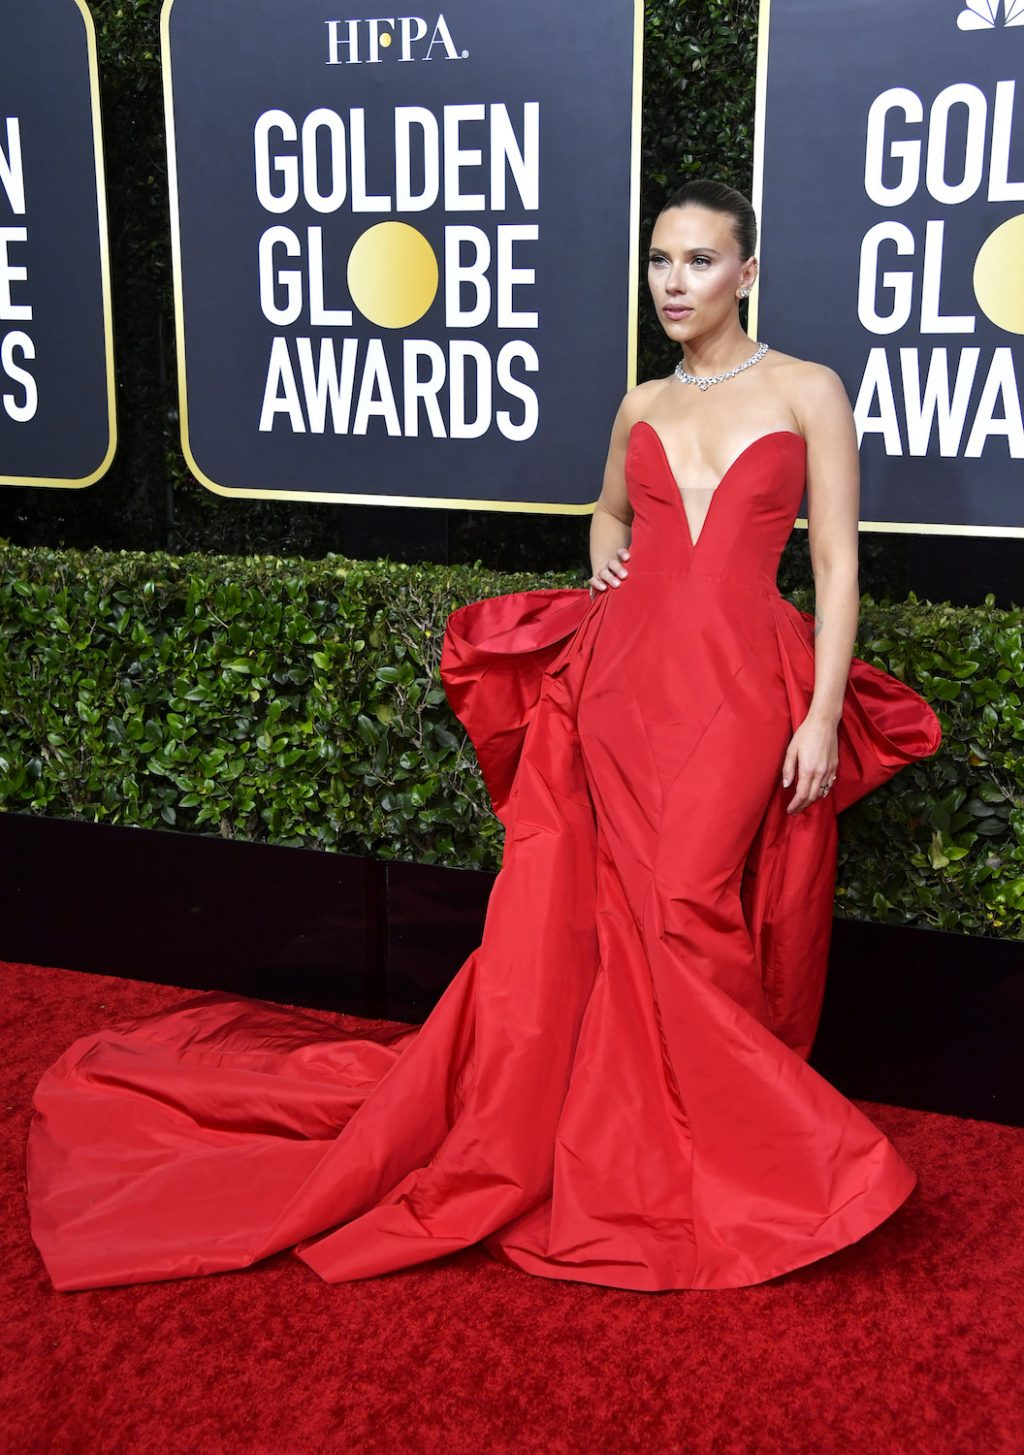 The Good, the Bad, and the Debatable from the Golden Globes Red Carpet